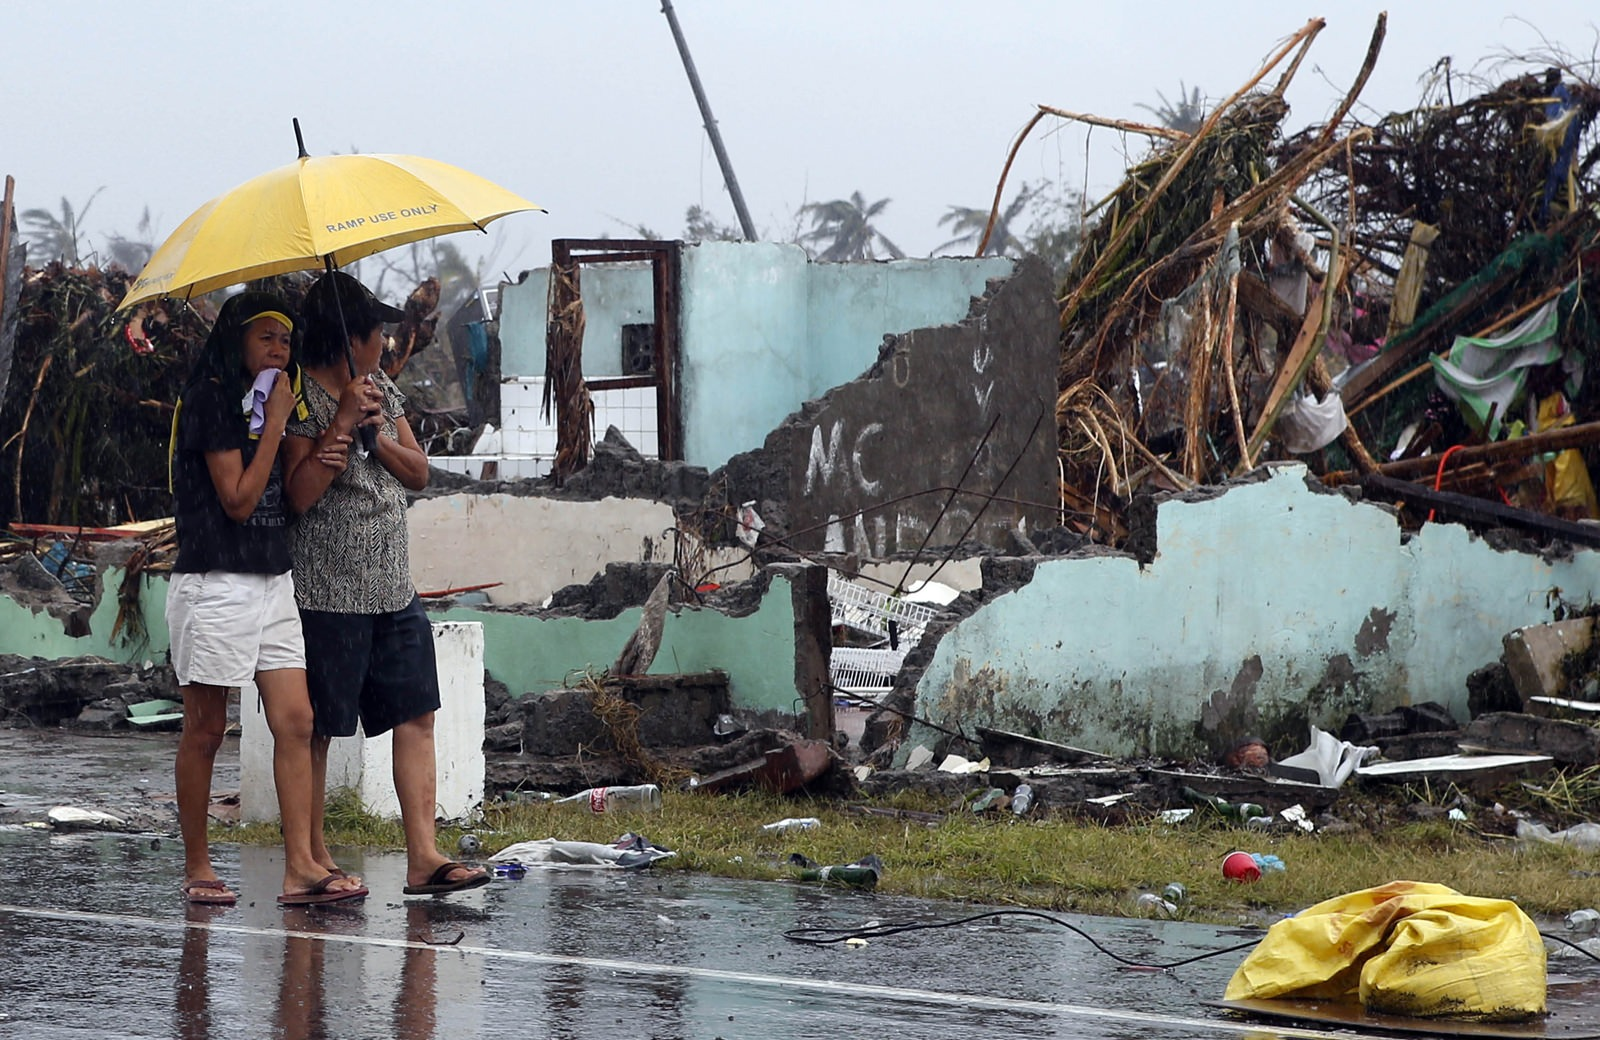 Women share an umbrella as they look at the remains of a house destroyed after Typhoon Haiyan hit Tacloban city in central Philippines